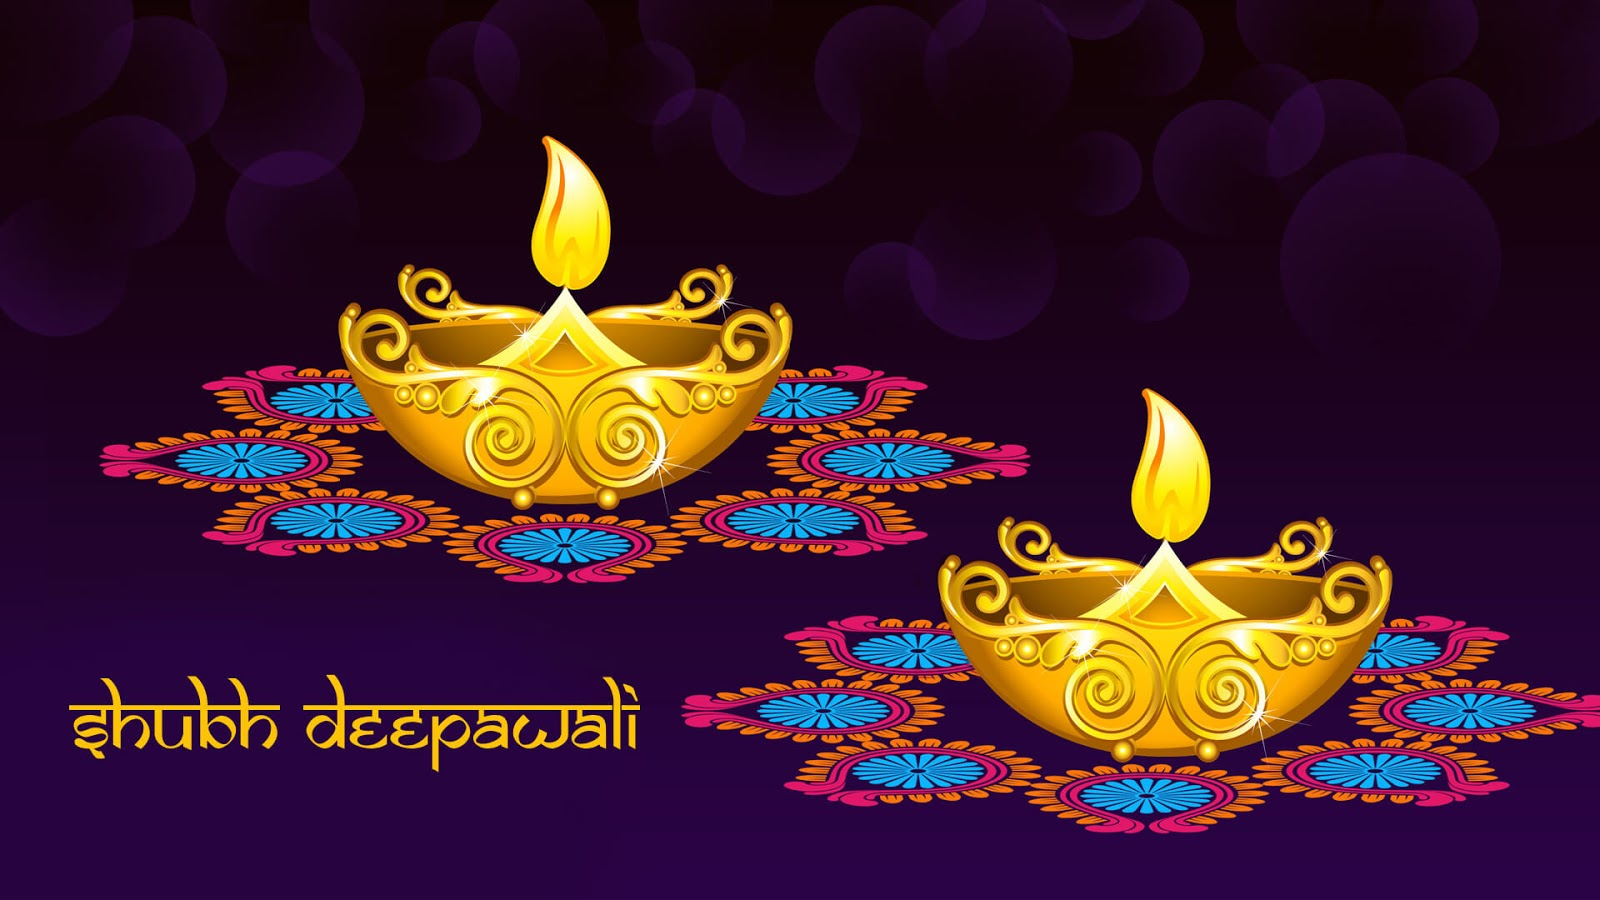 2018} happy diwali wallpapers - hd - festivals on web